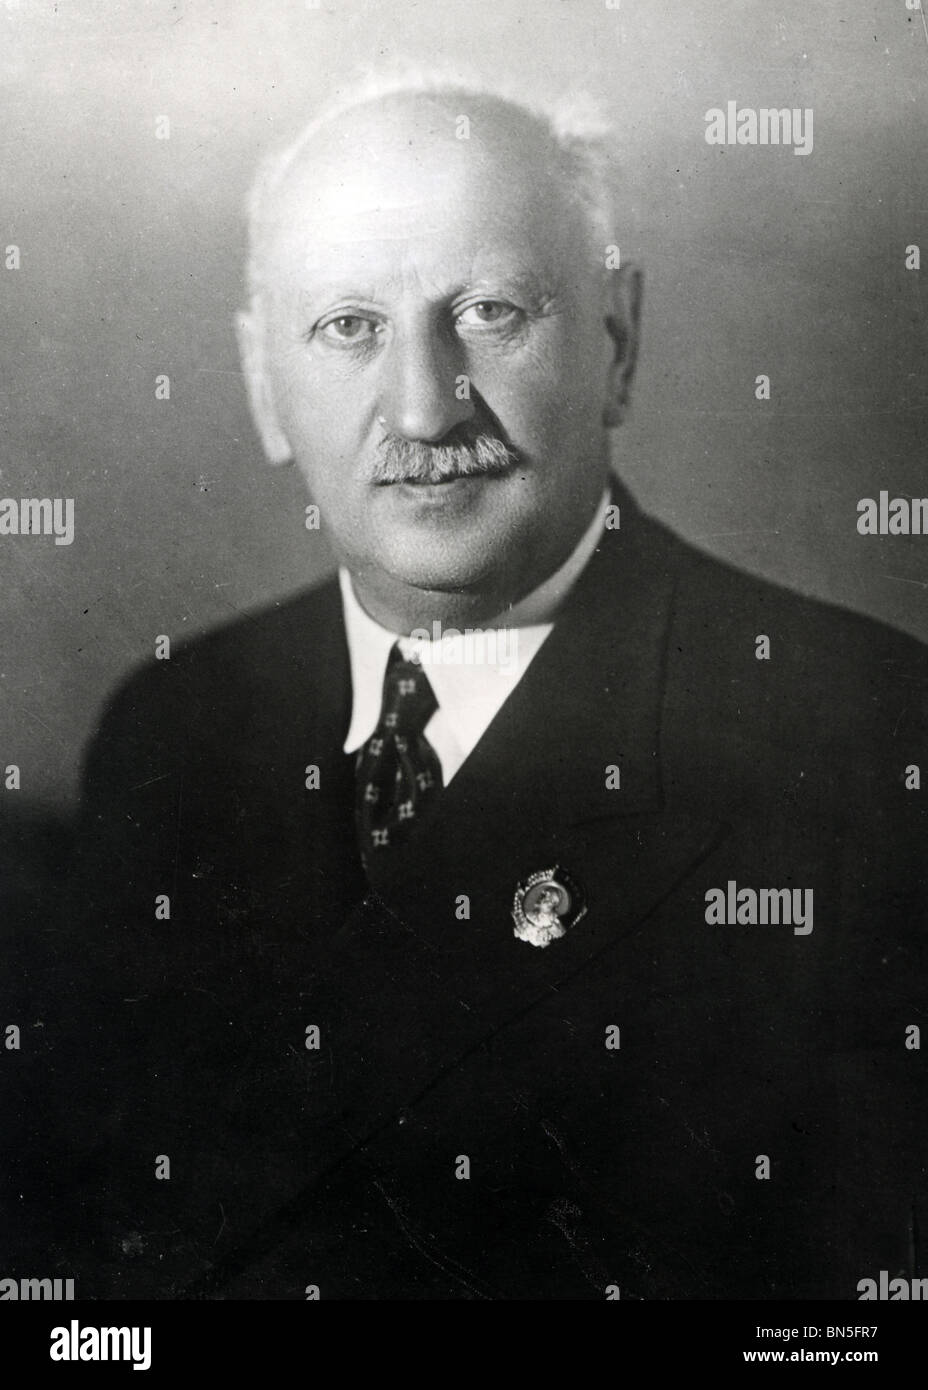 ADOLPH JOFFE (1883-1927) Soviet diplomat who represented Russia at the Treaty of Brest-Litovsk in 1917  later committed - Stock Image